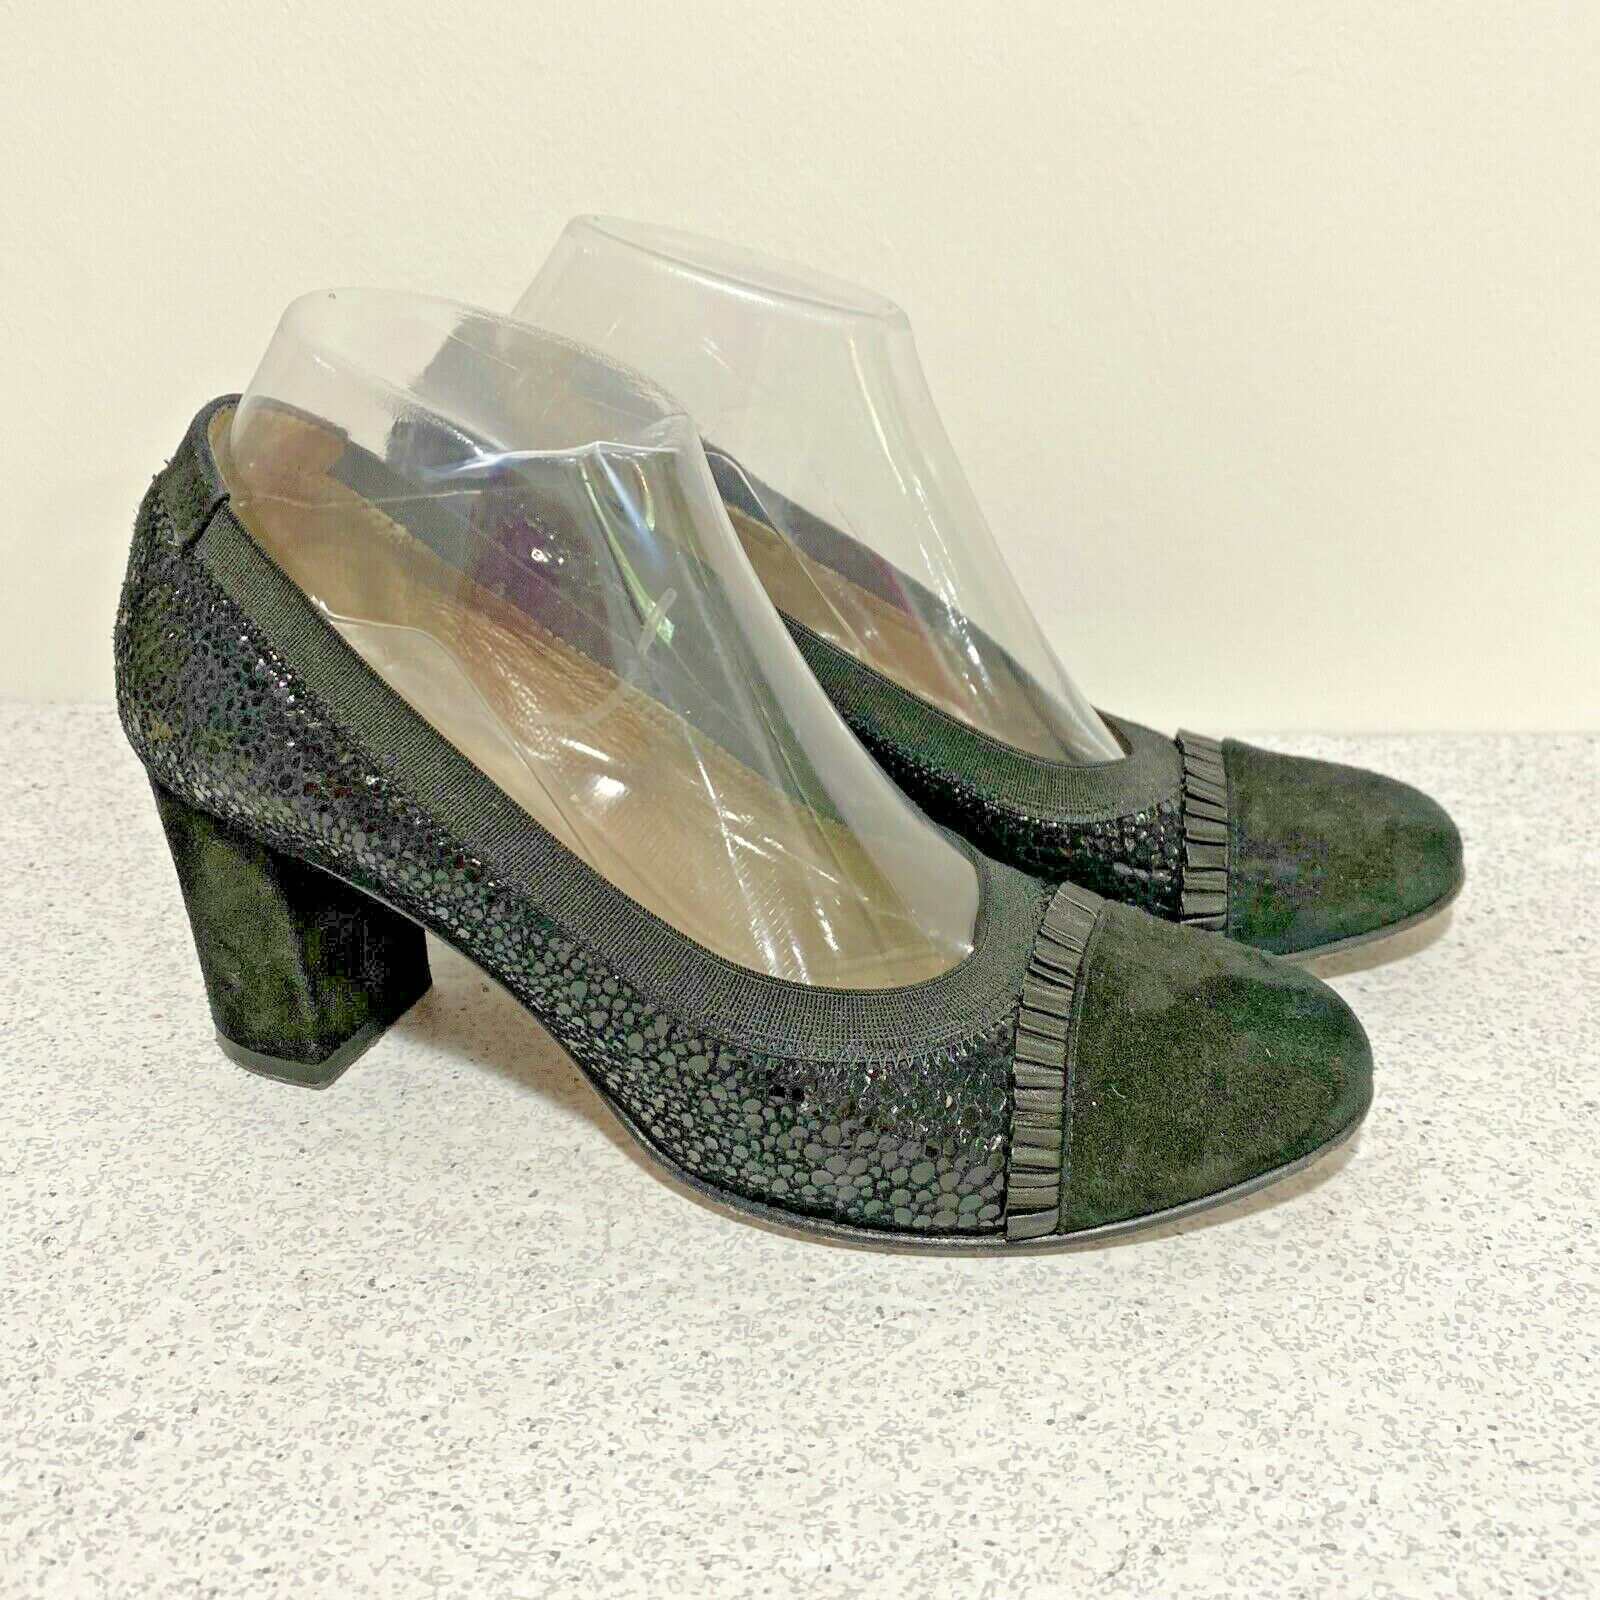 Anyi Lu Black Suede High Heel Pumps Shoes Ladies EU Size 38.5 Made in Italy